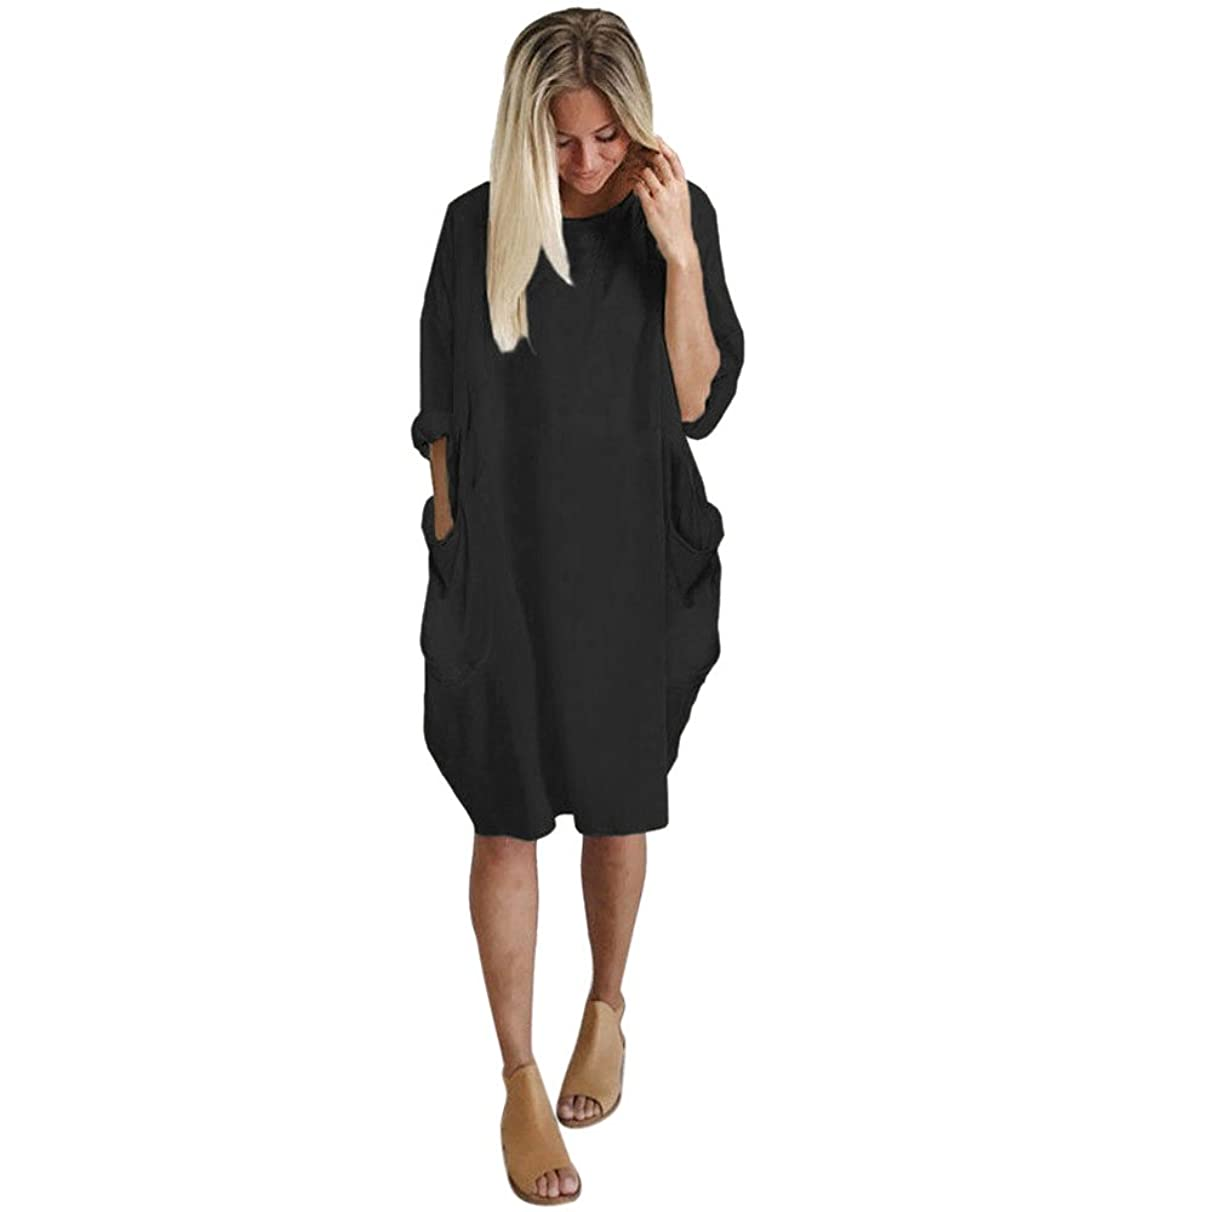 Toimothcn Womens Loose Solid Pocket Dress Casual Crew Neck Long Tops Dress Plus Size